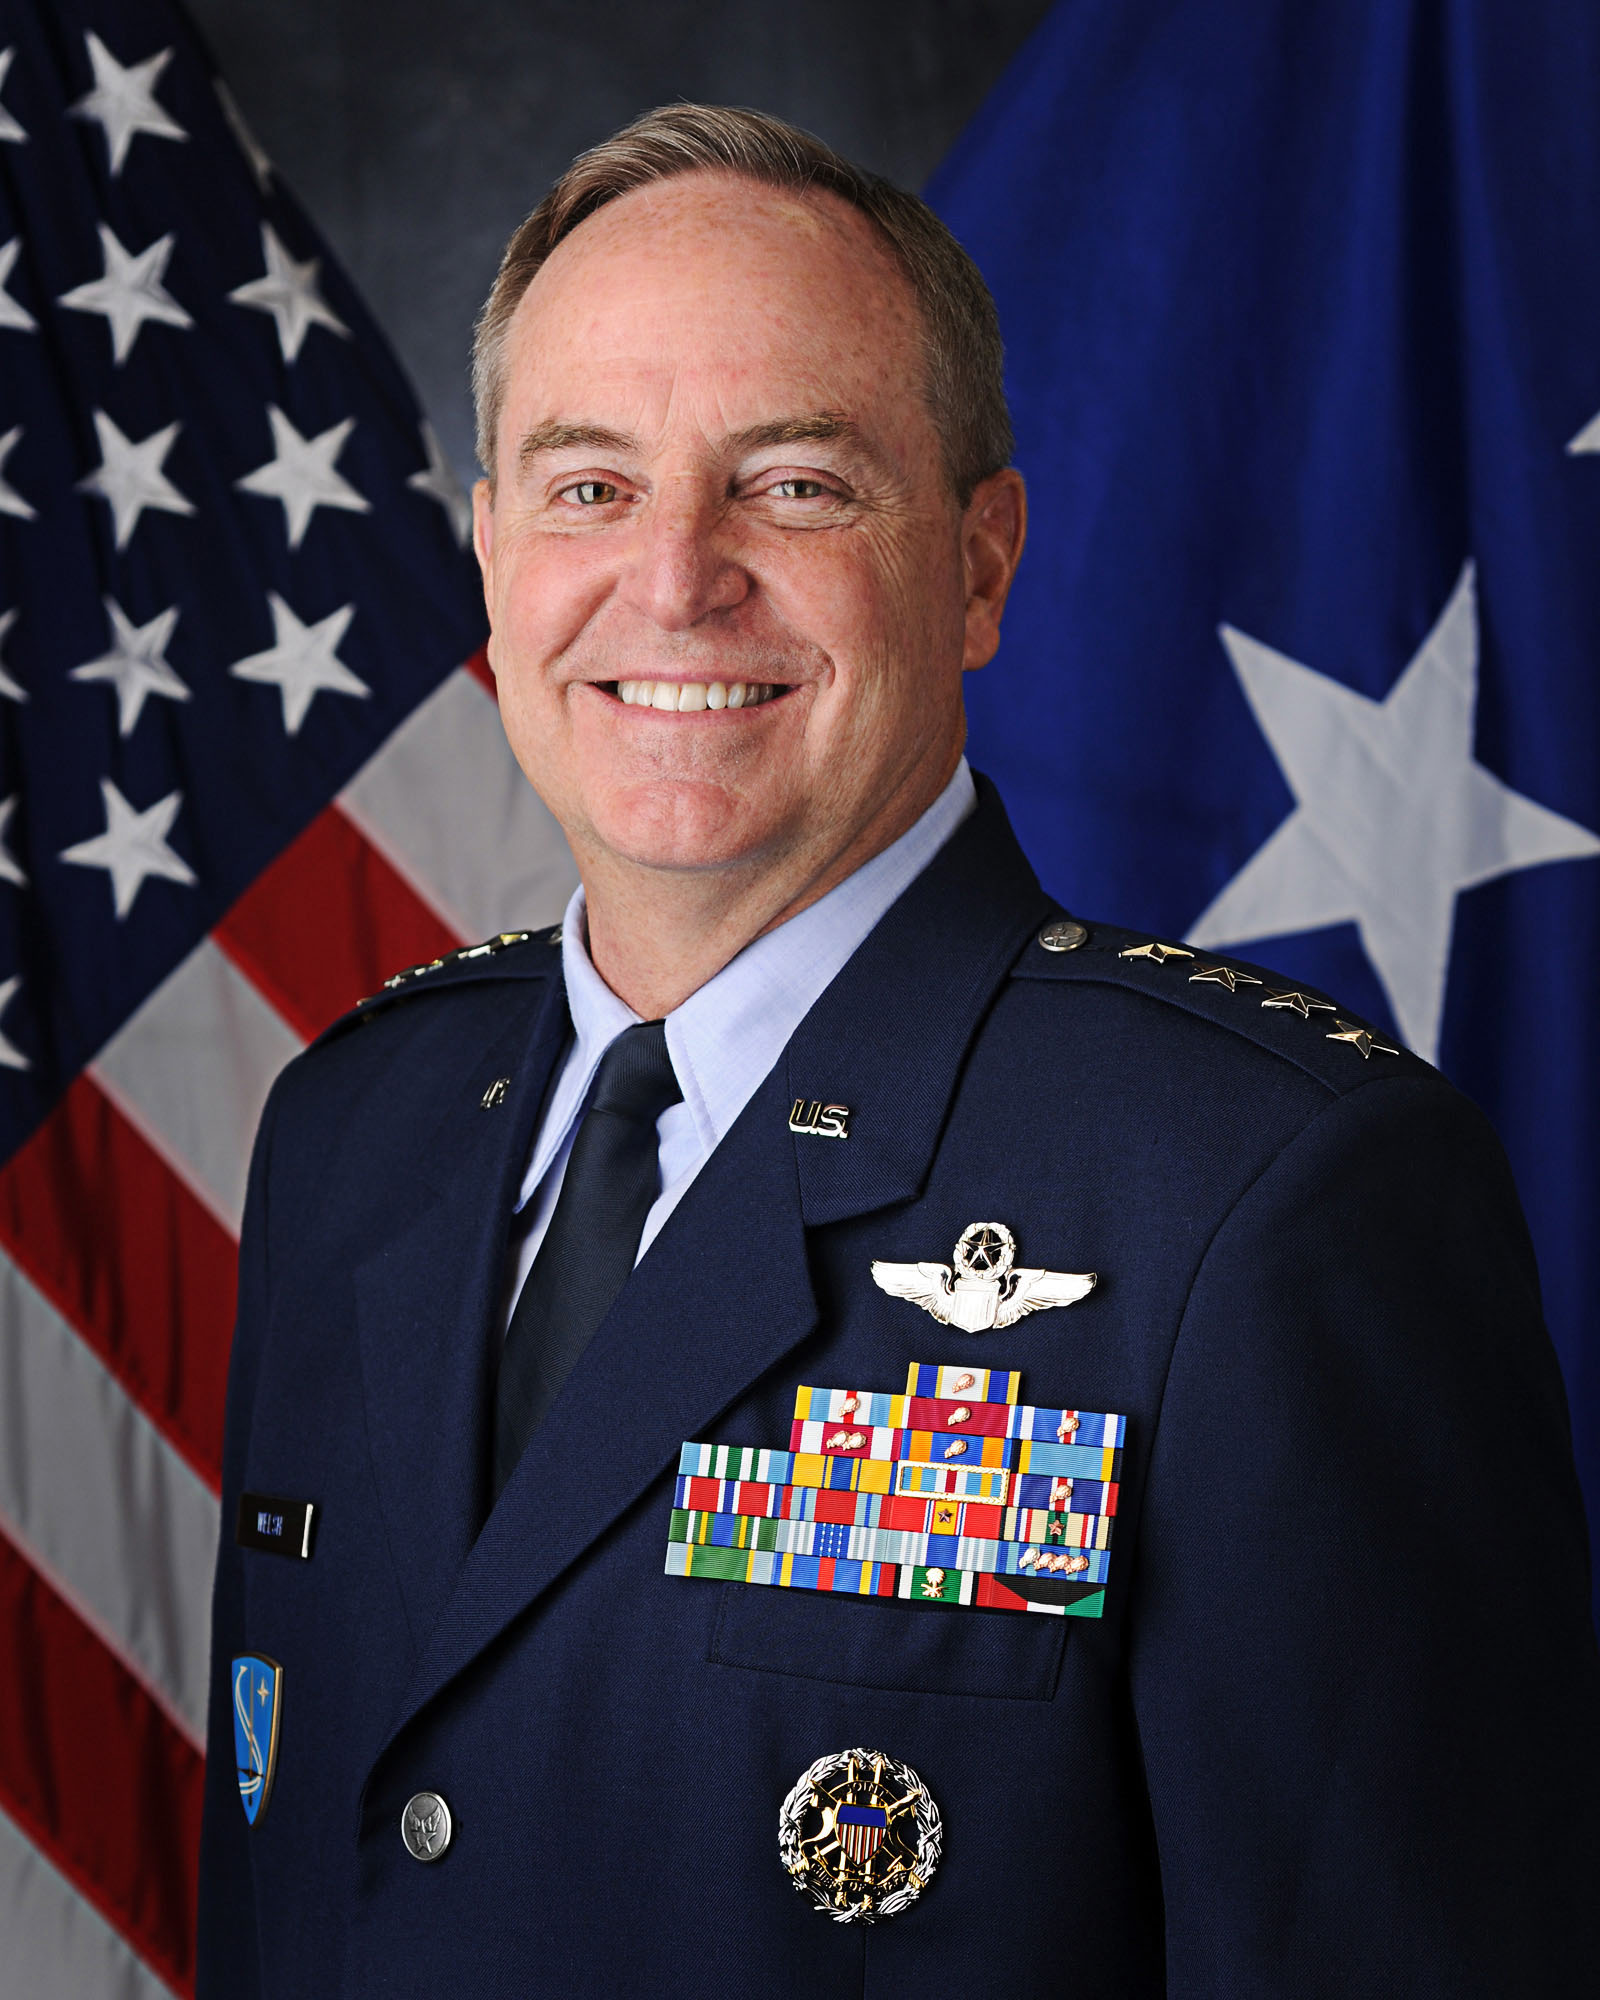 General Mark A. Welsh